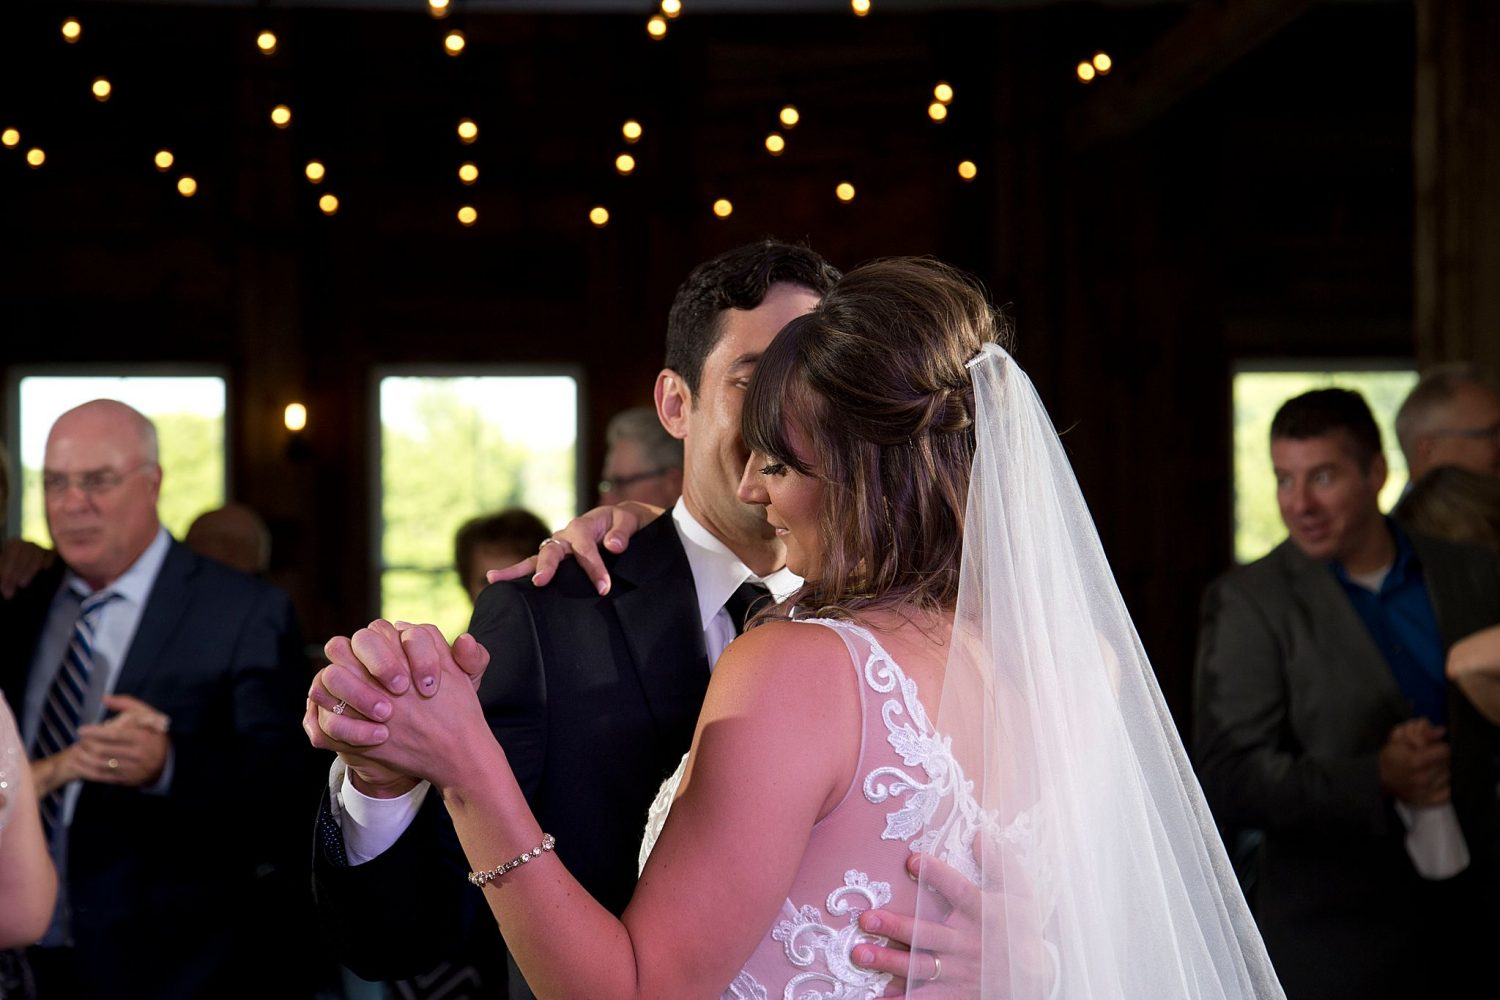 Bride and groom share their first dance with their guests at their wedding reception at Rapid Creek Cidery.